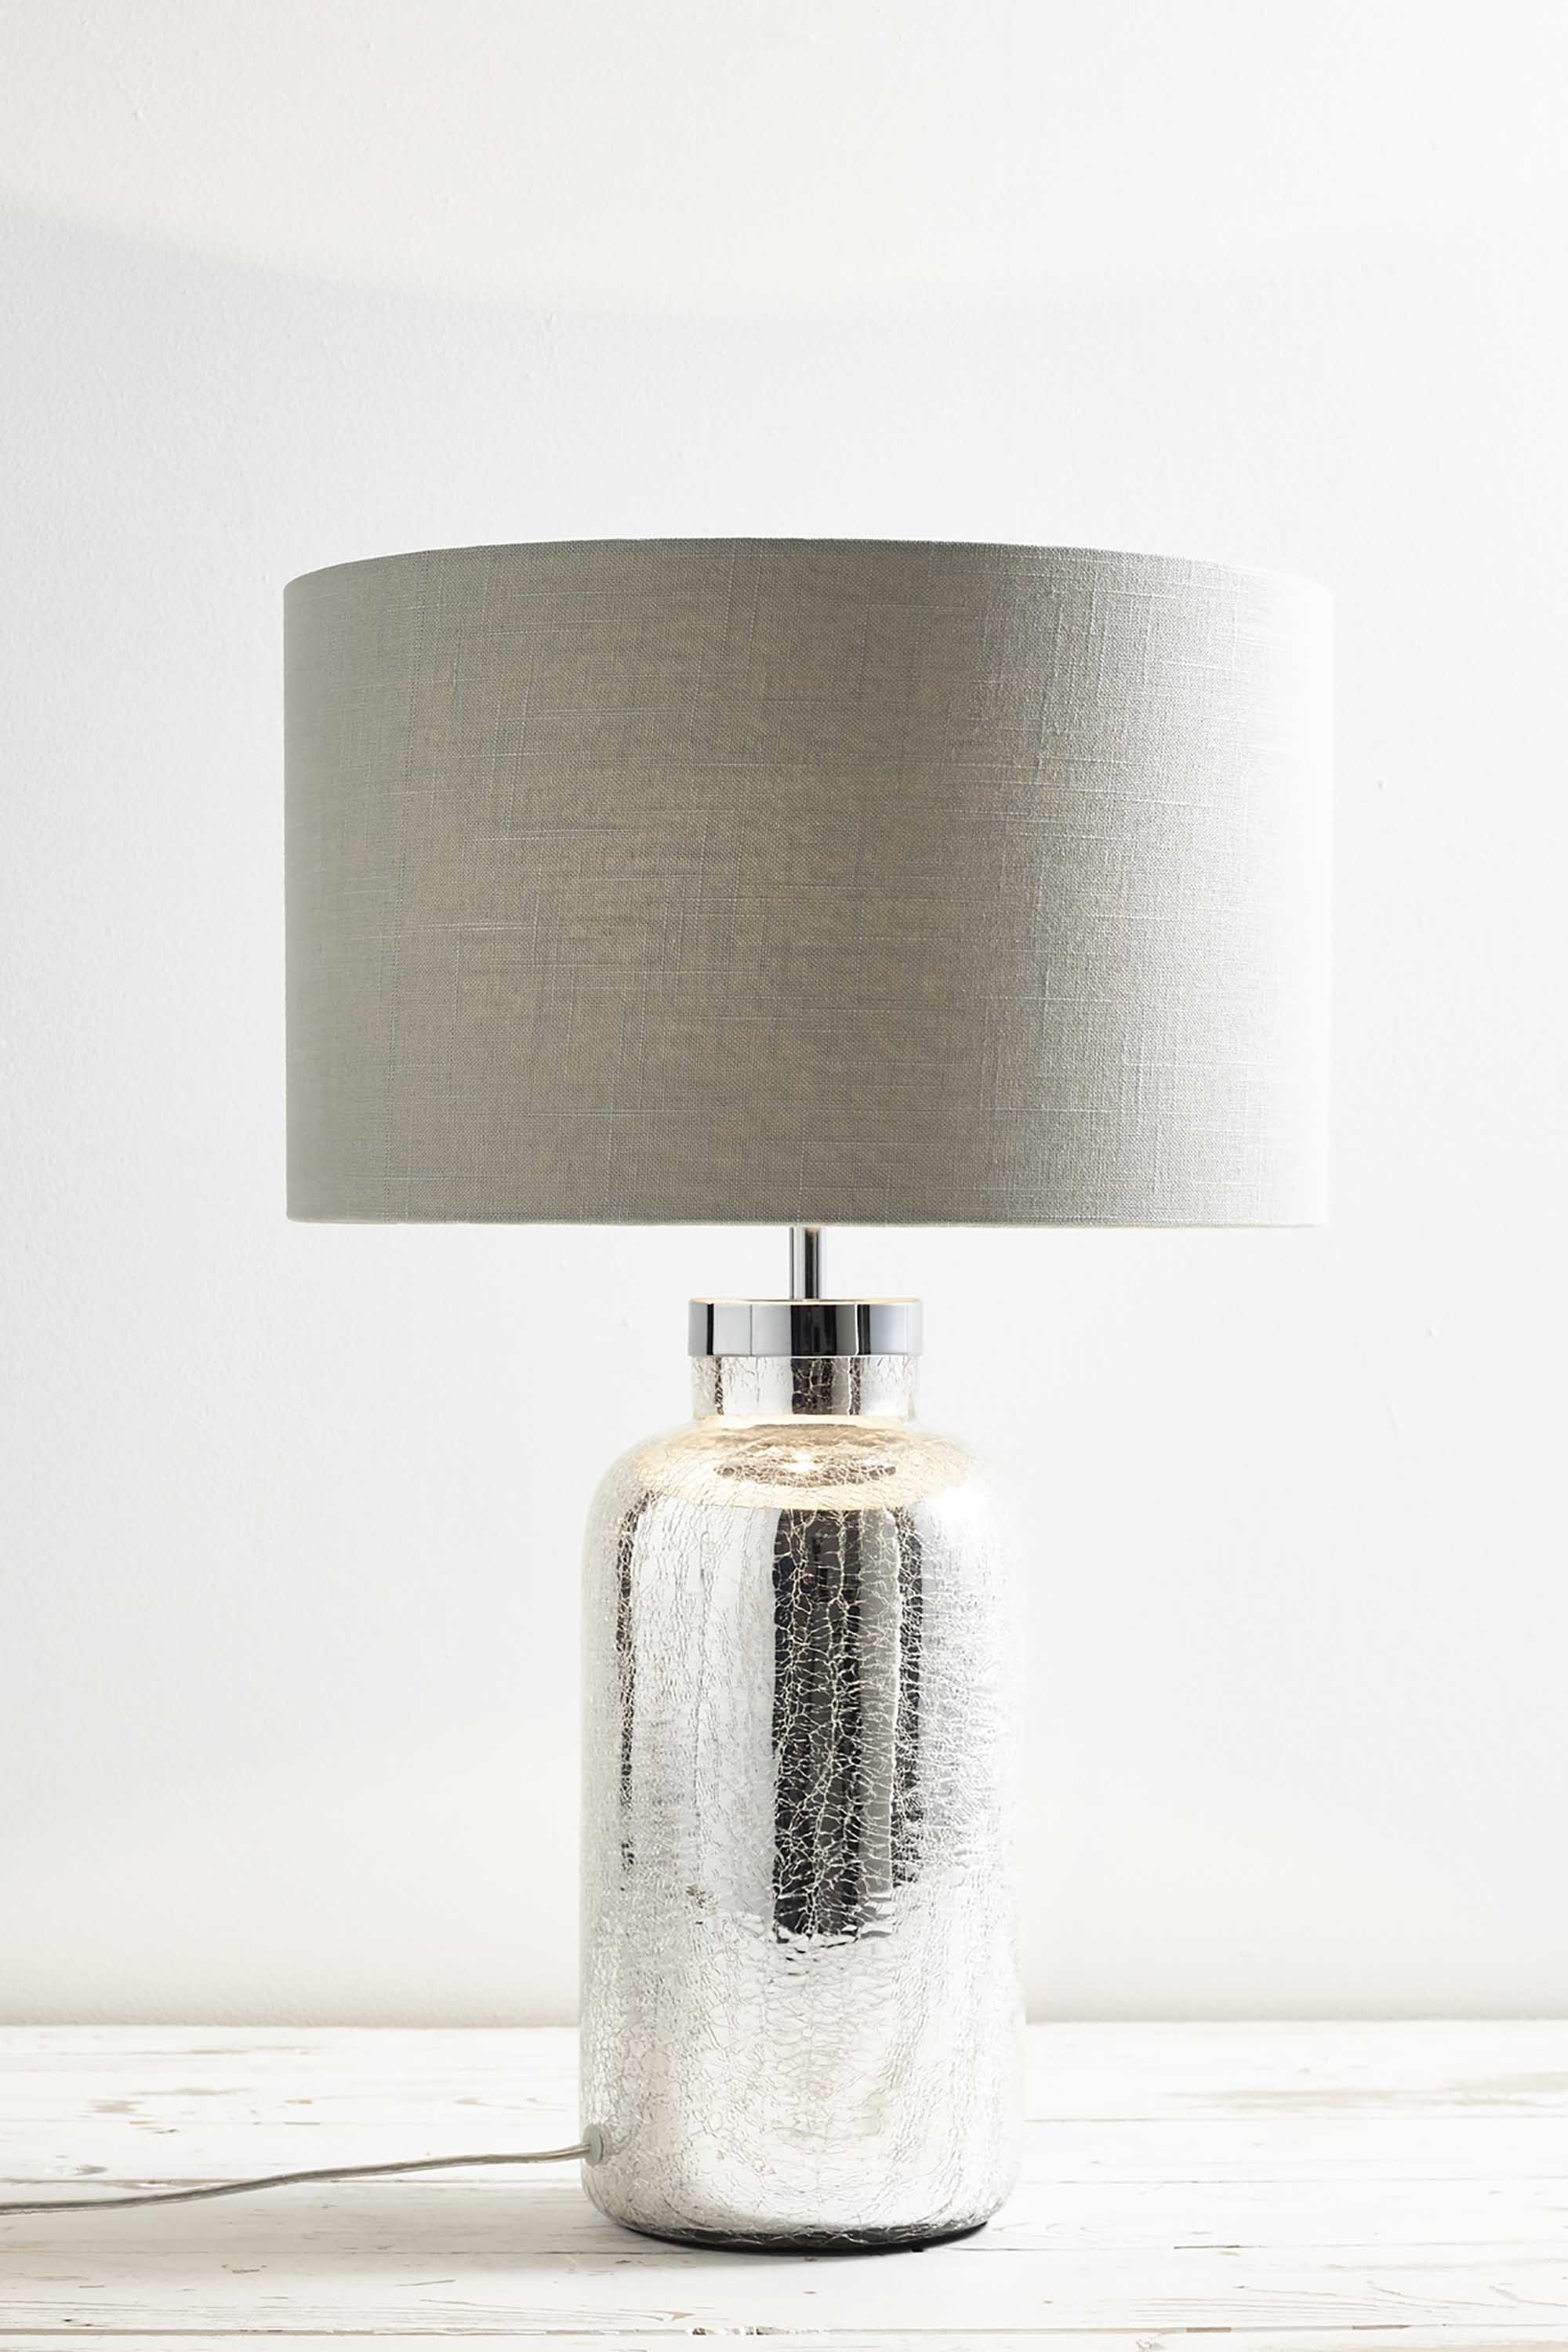 BHS Ulrica Table Lamp Mercury Bottle Light about Modern Bedside Glass Base Details wShade IYyv7gmbf6